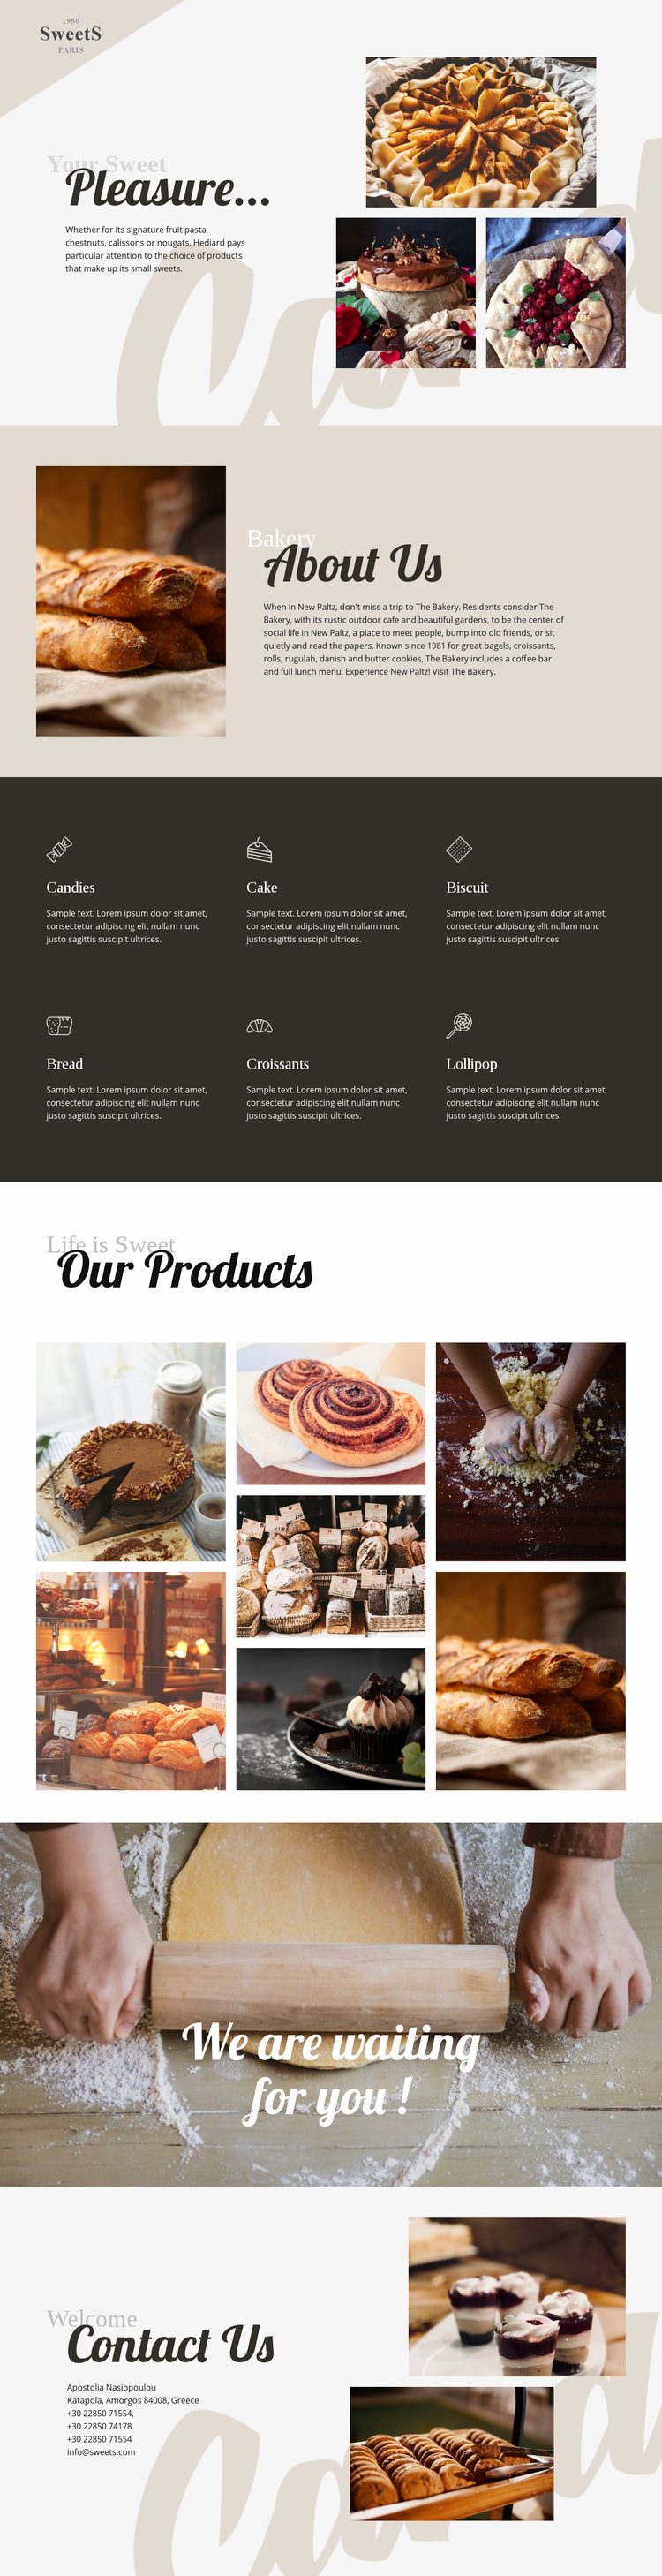 Cakes and baking food Web Page Designer